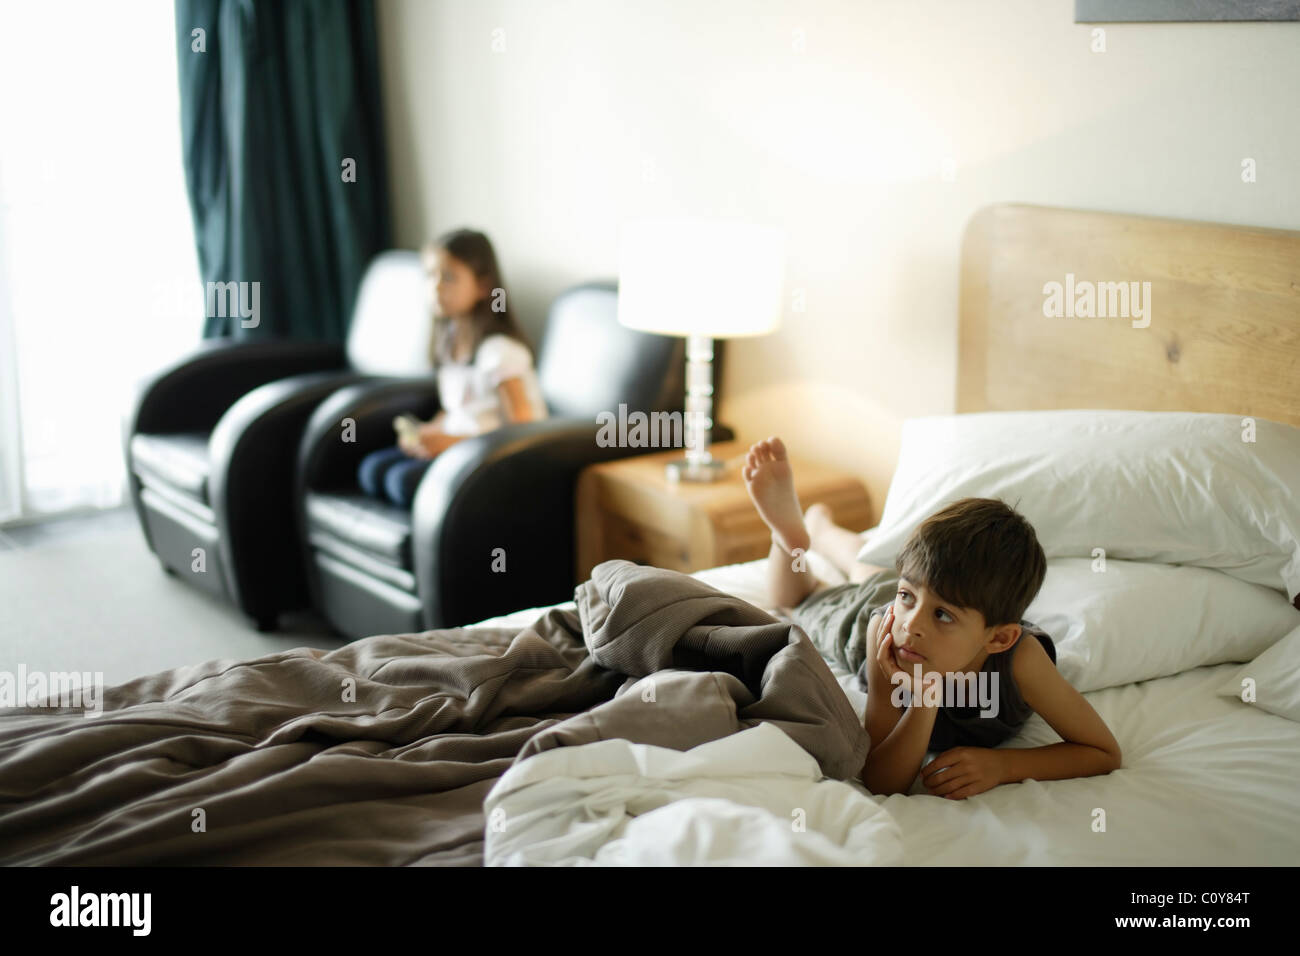 Boy on bed and girl in chair, watching wall mounted tv in a motel room. - Stock Image